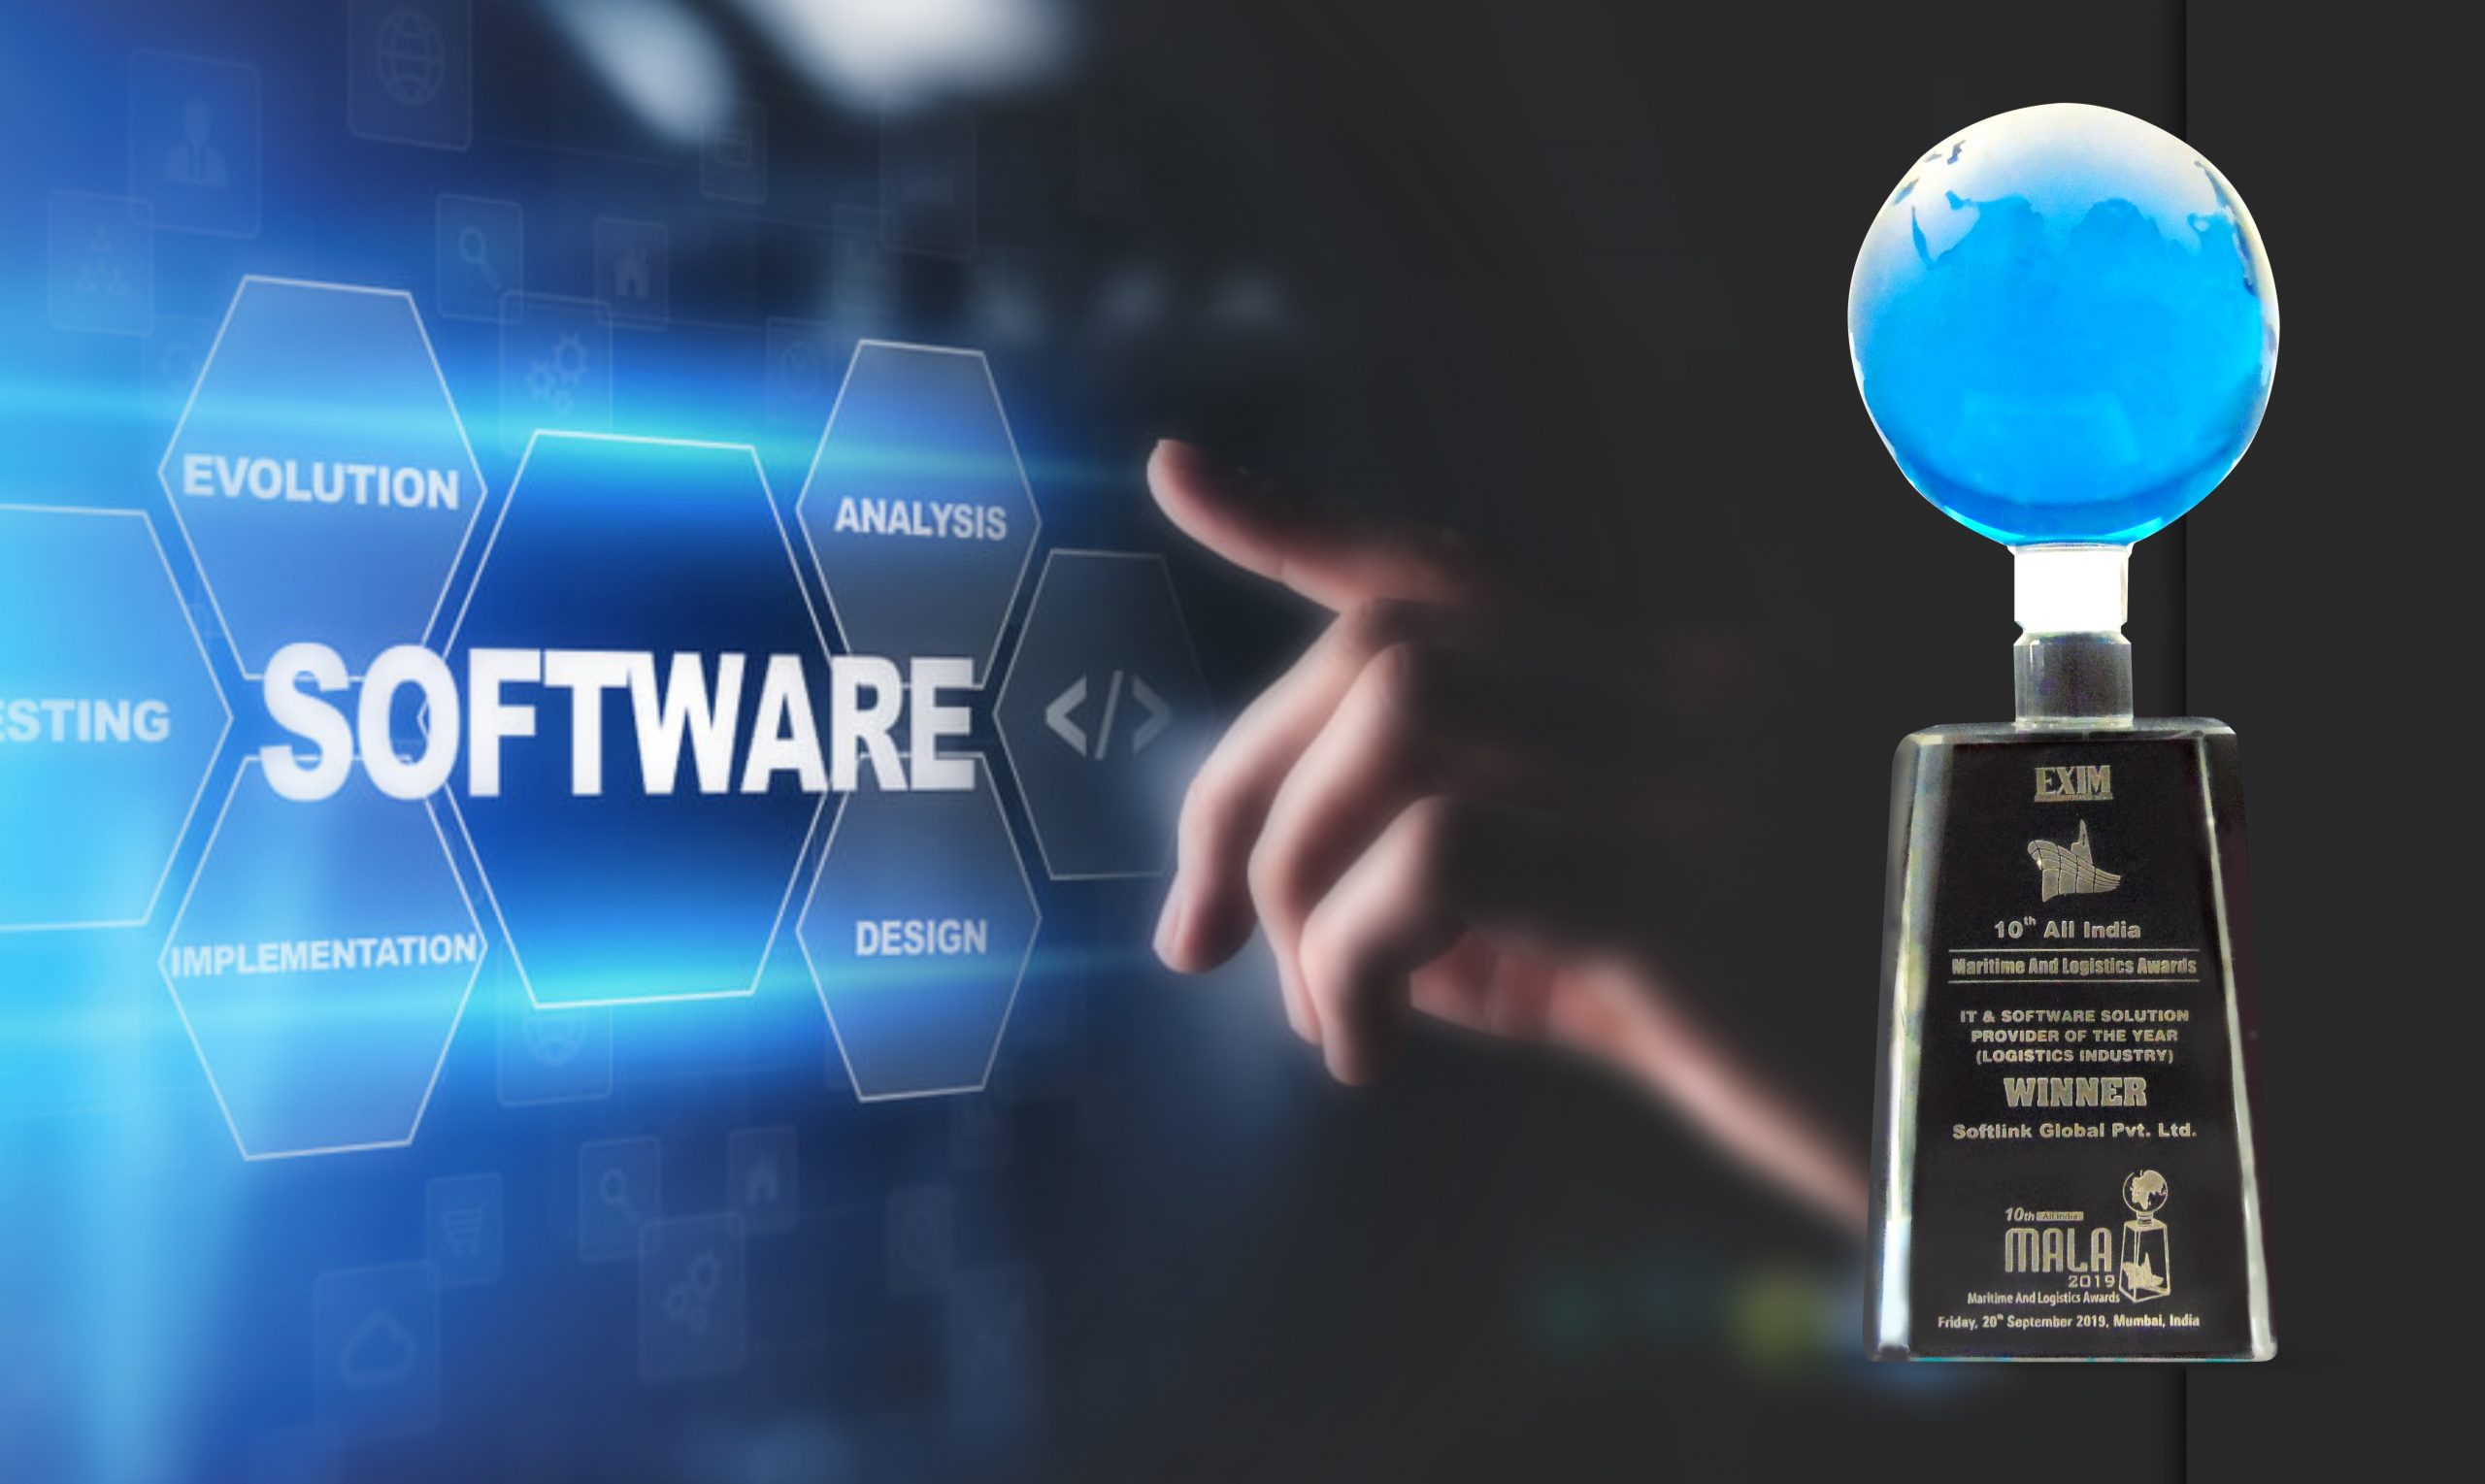 Softlink adjudged the best IT & Software company at MALA 2019